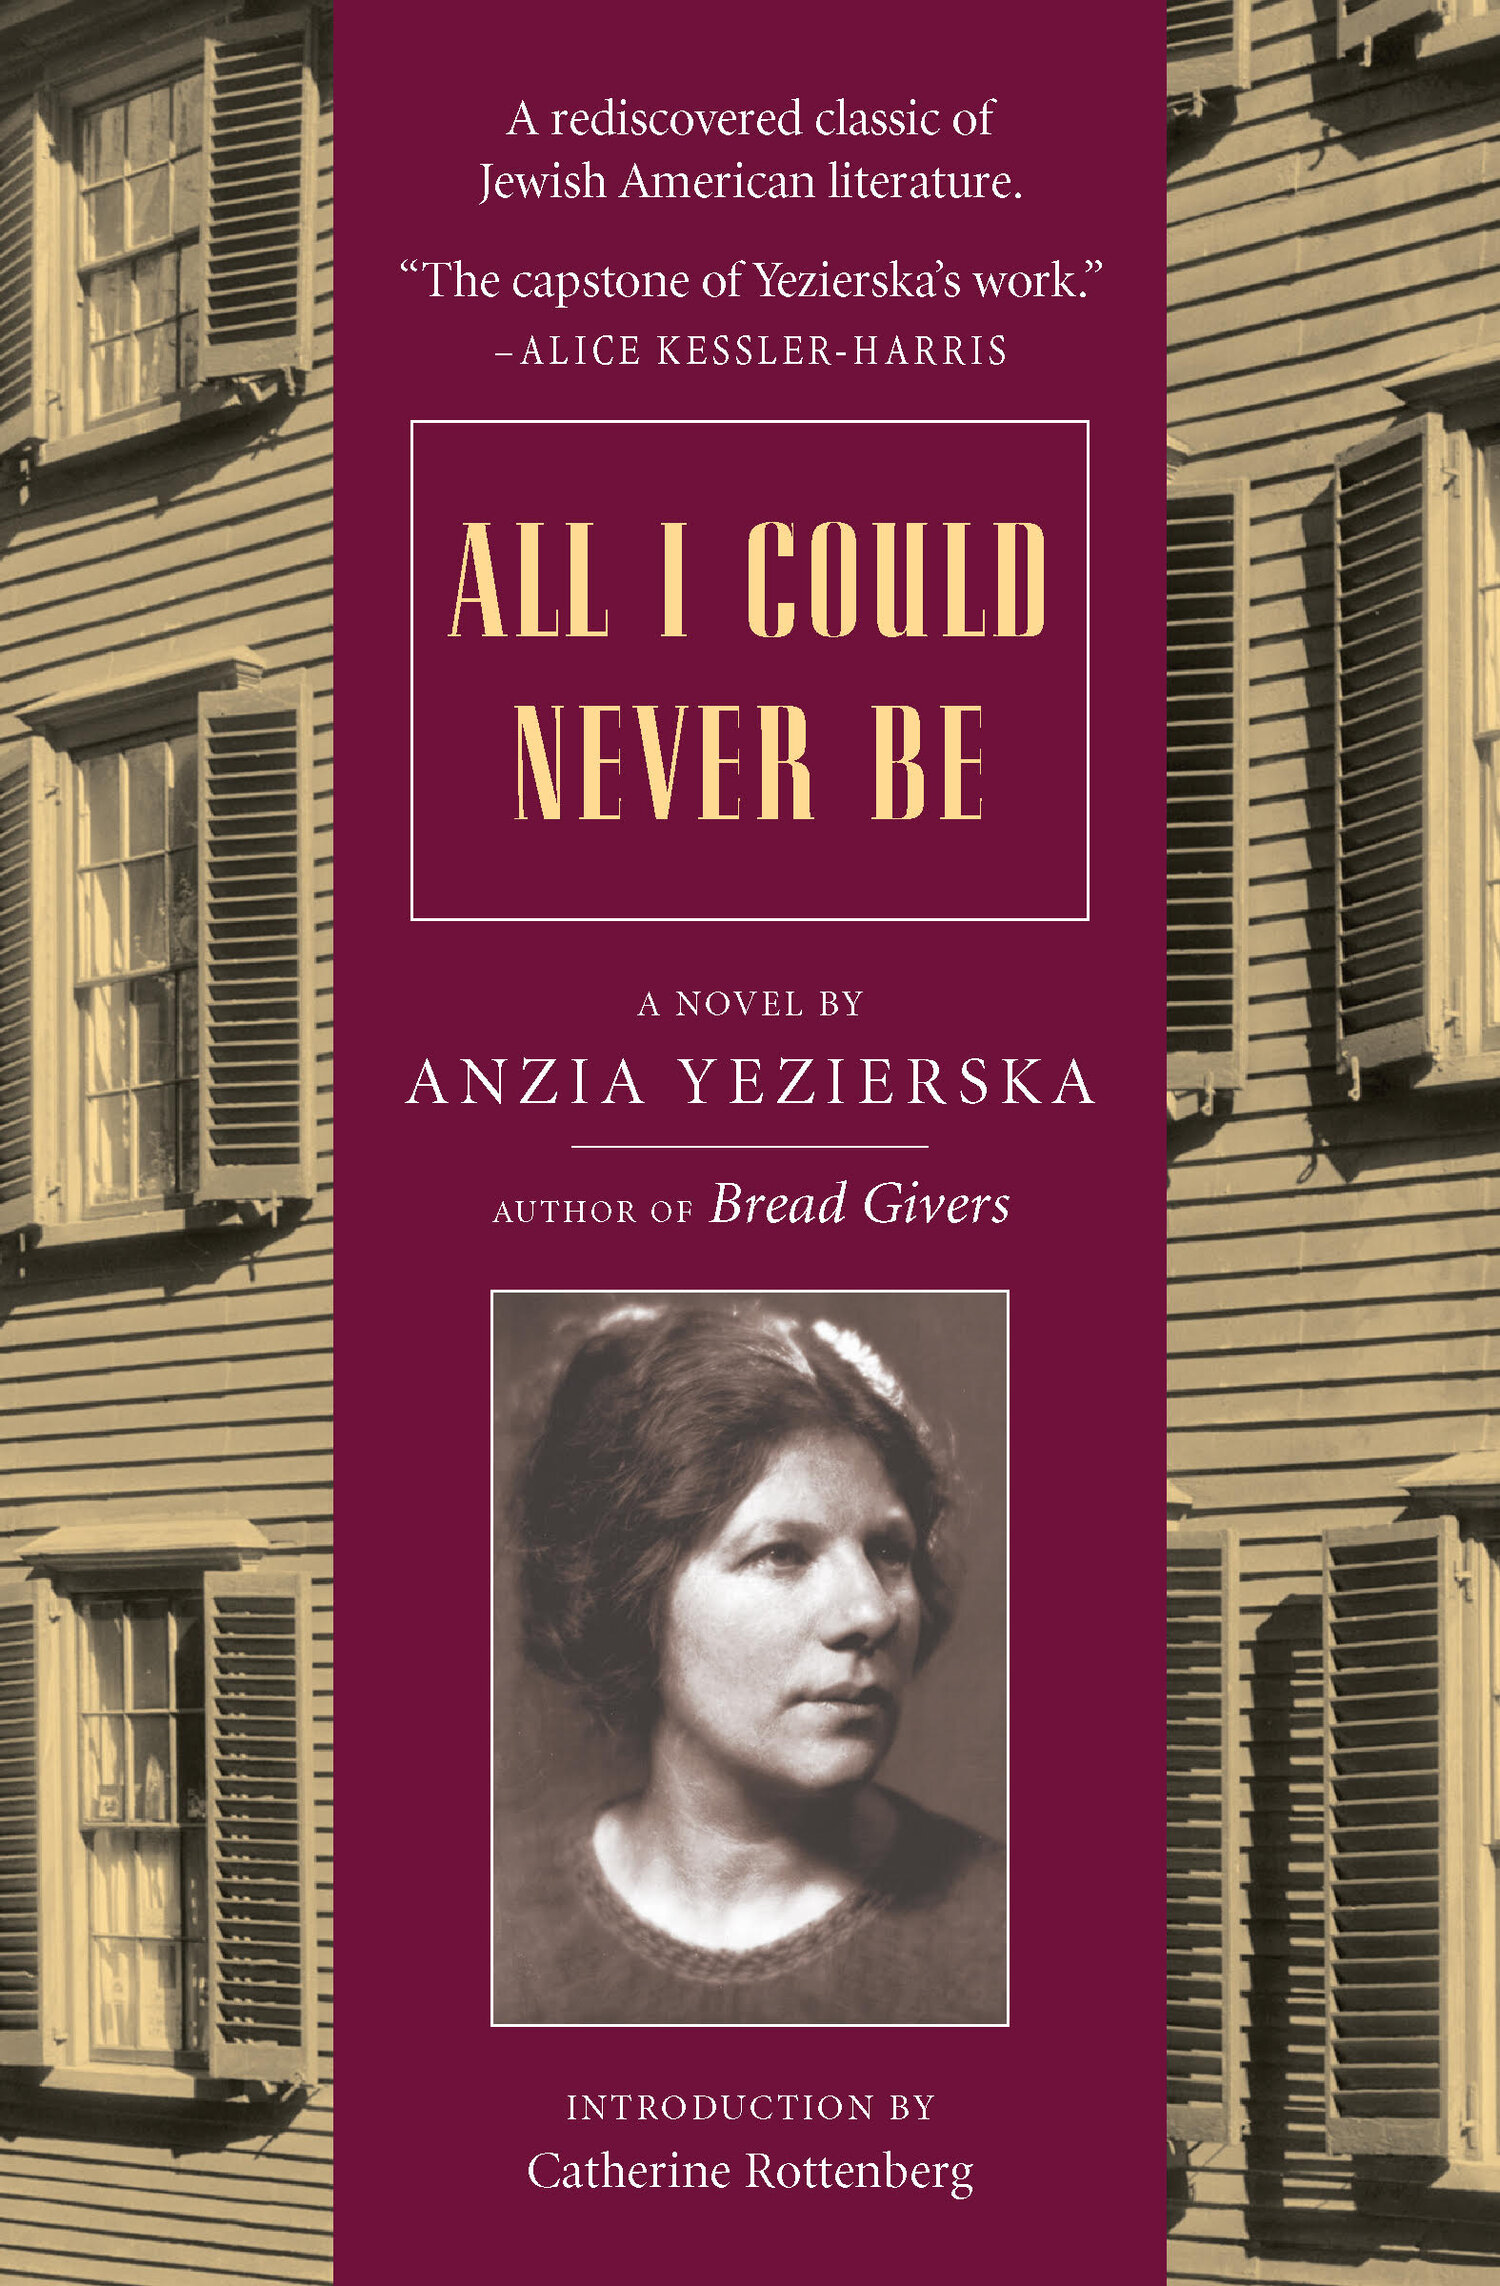 All I Could Never Be Anzia Yezierska